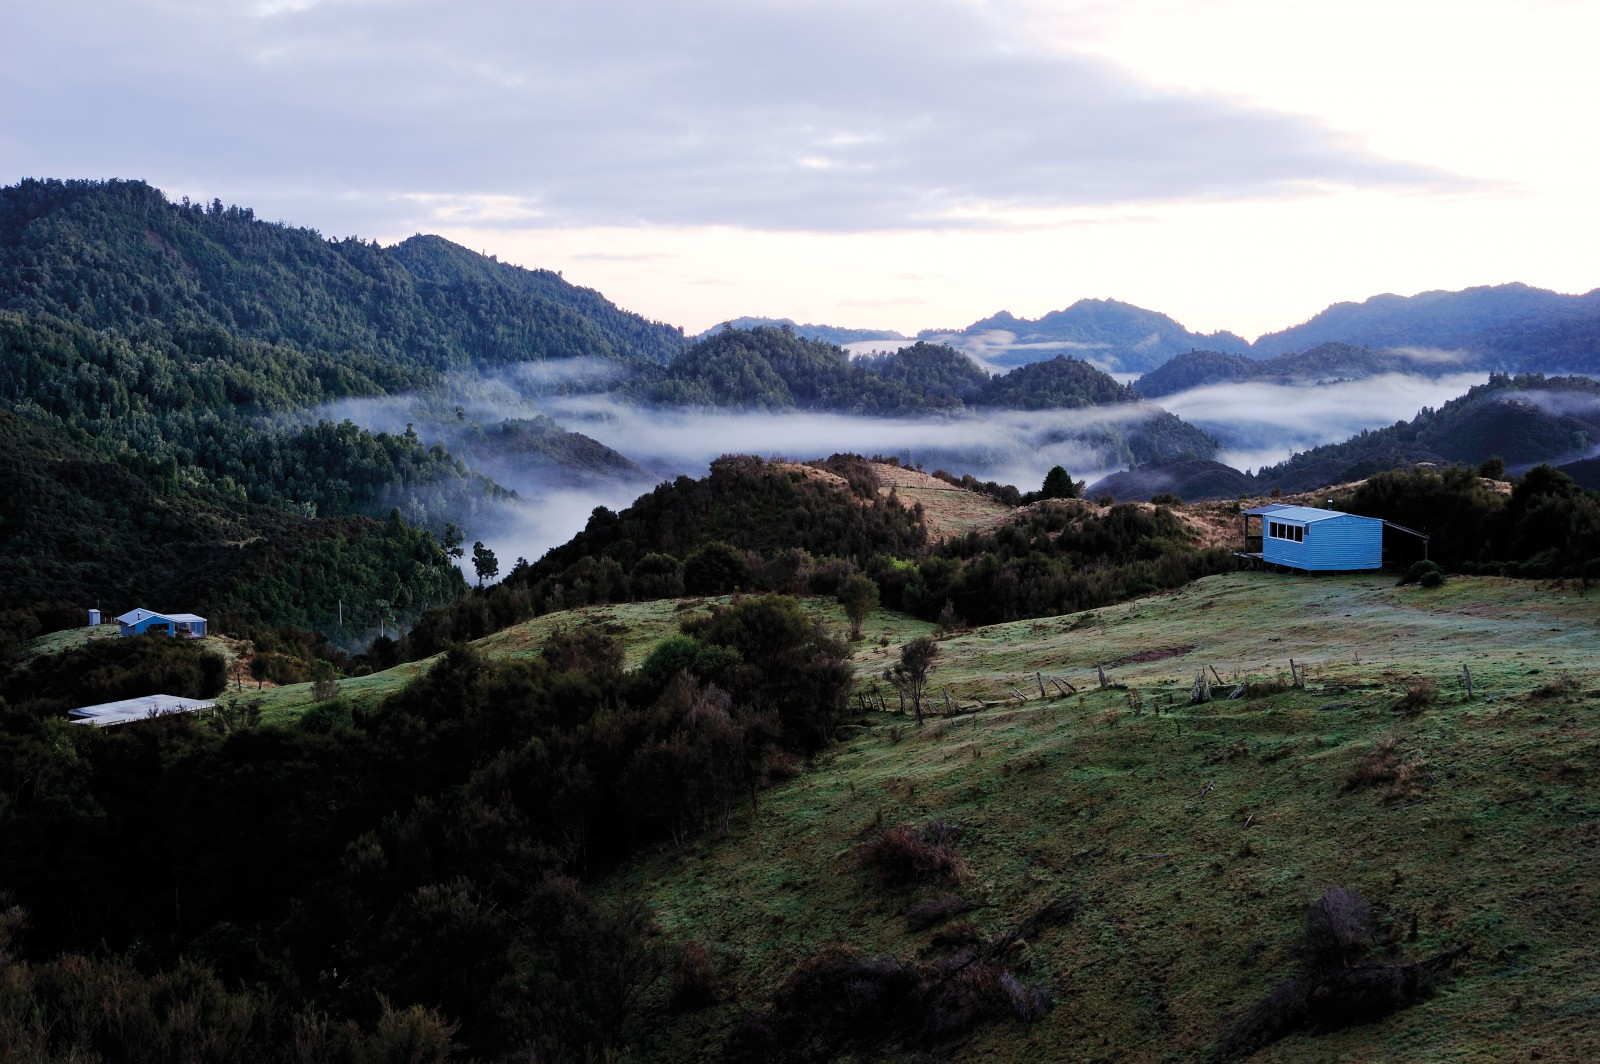 """'Children of the mist', a term coined by ethnologist Elsdon Best in the 1920s, has been applied to Tuhoe ever since. But it is more than a romanticised label. In Tuhoe's world view, it describes the literal origins of the people—from the land itself. """"If you know where the mist comes from, then that is where I come from,"""" kaumatua Rehita Taputu told the Waitangi Tribunal. At Maungapohatu, the mist remains but most of the children have gone. Only a handful of residents now live here, where once a community of 1000 thrived in Rua Kenana's 'New Jerusalem'. But change is apparent: summer baches are springing up among the crumbling relics of the past."""